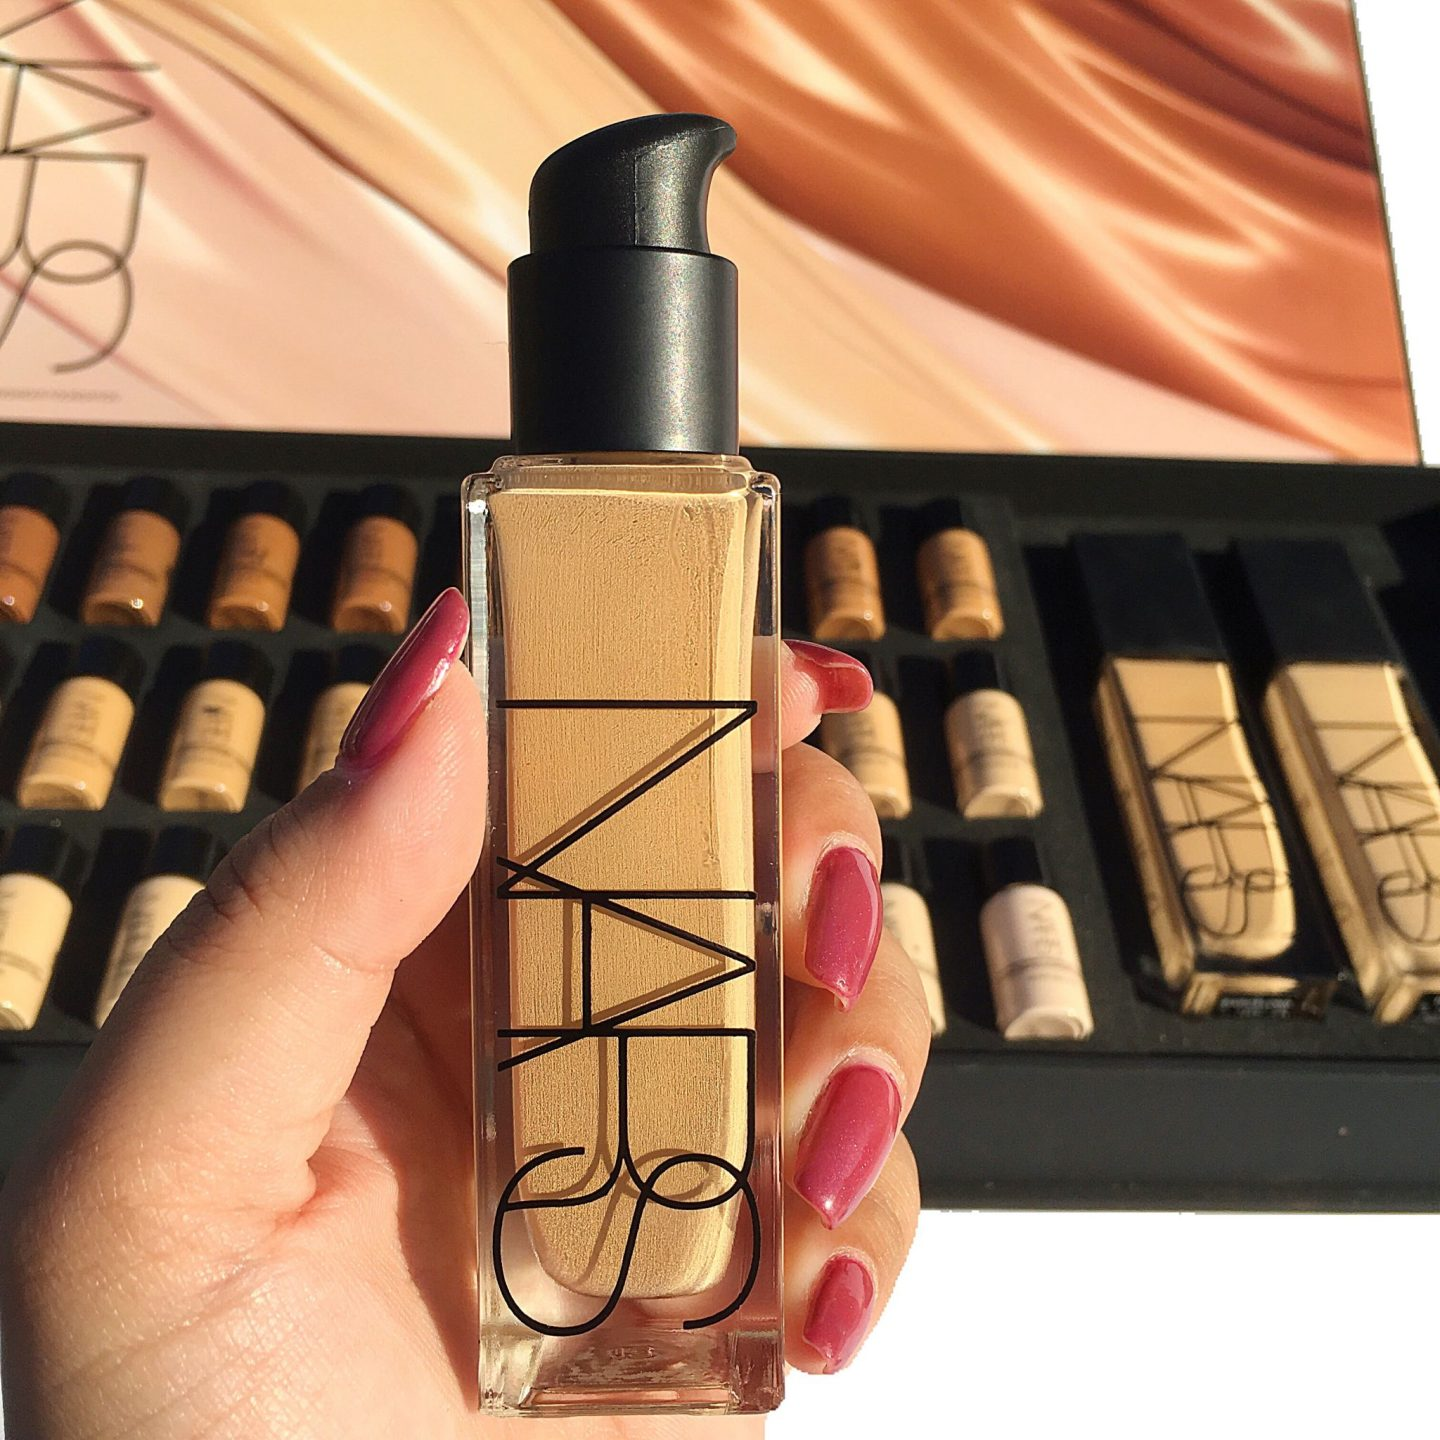 Nars Natural Radiant Longwear Foundation Review Swatches All Shades Cali Beaute